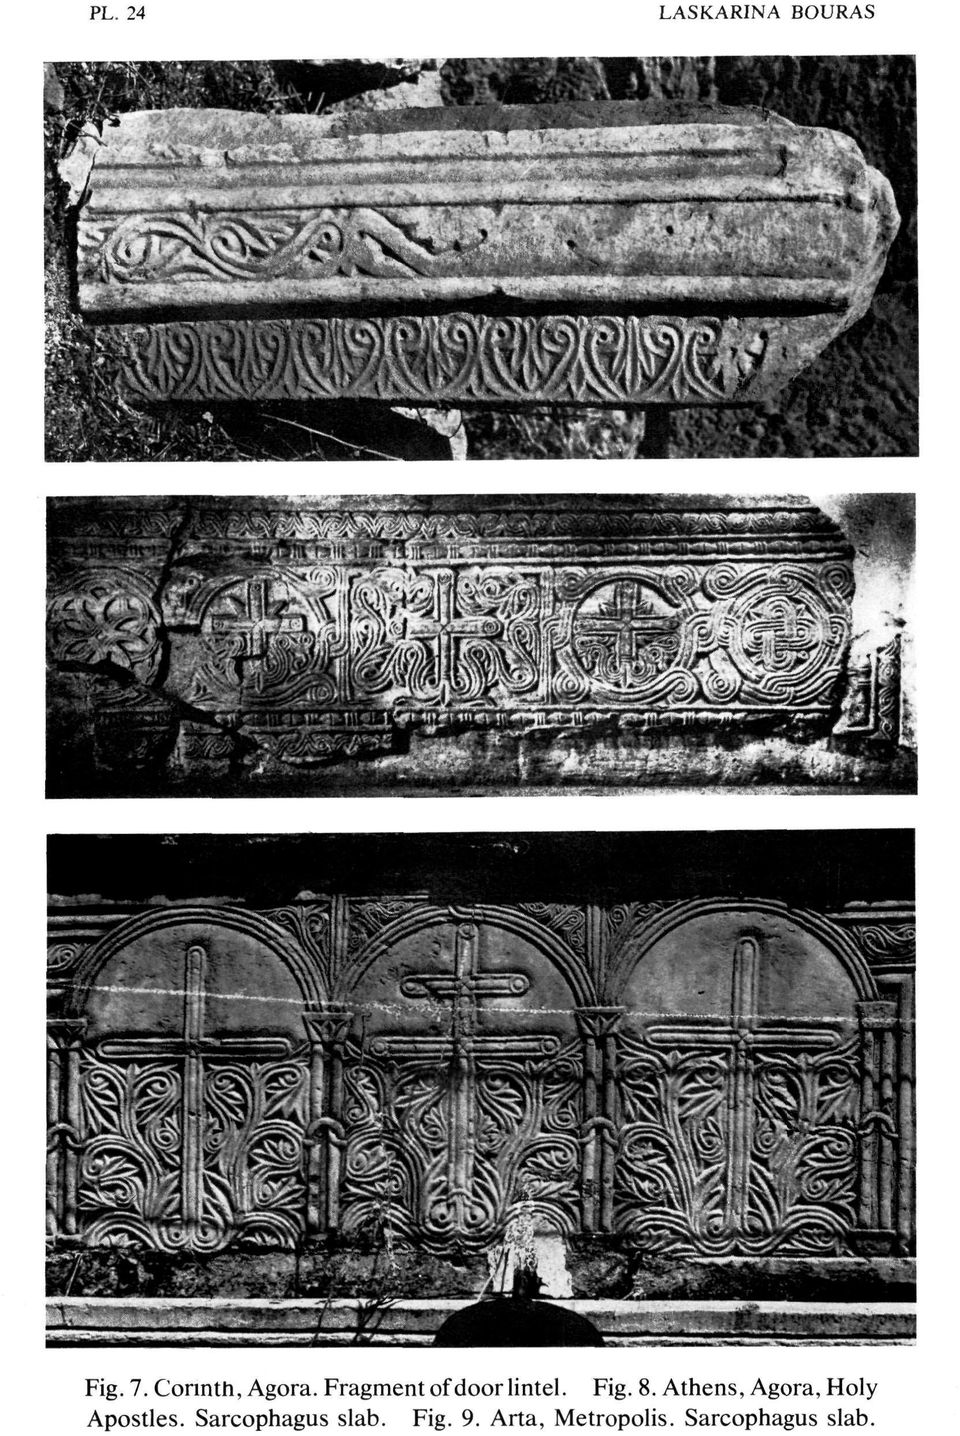 Fig. 8. Athens, Agora, Holy Apostles.